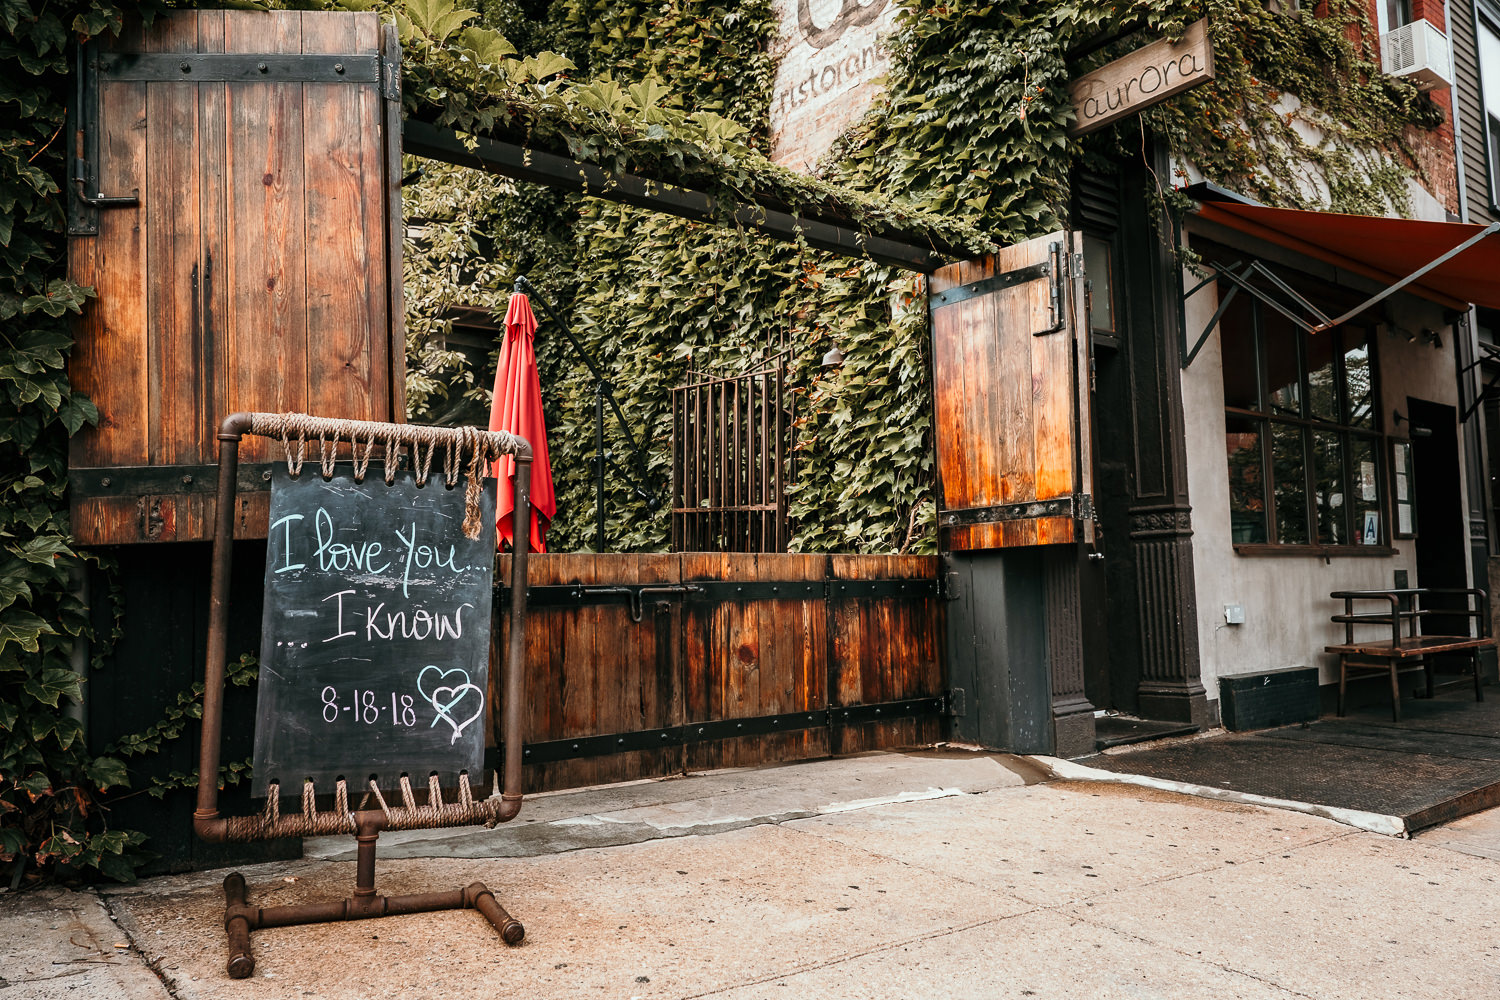 entrance to restaurant green walls wooden doors sign written in chalk says I love you I know